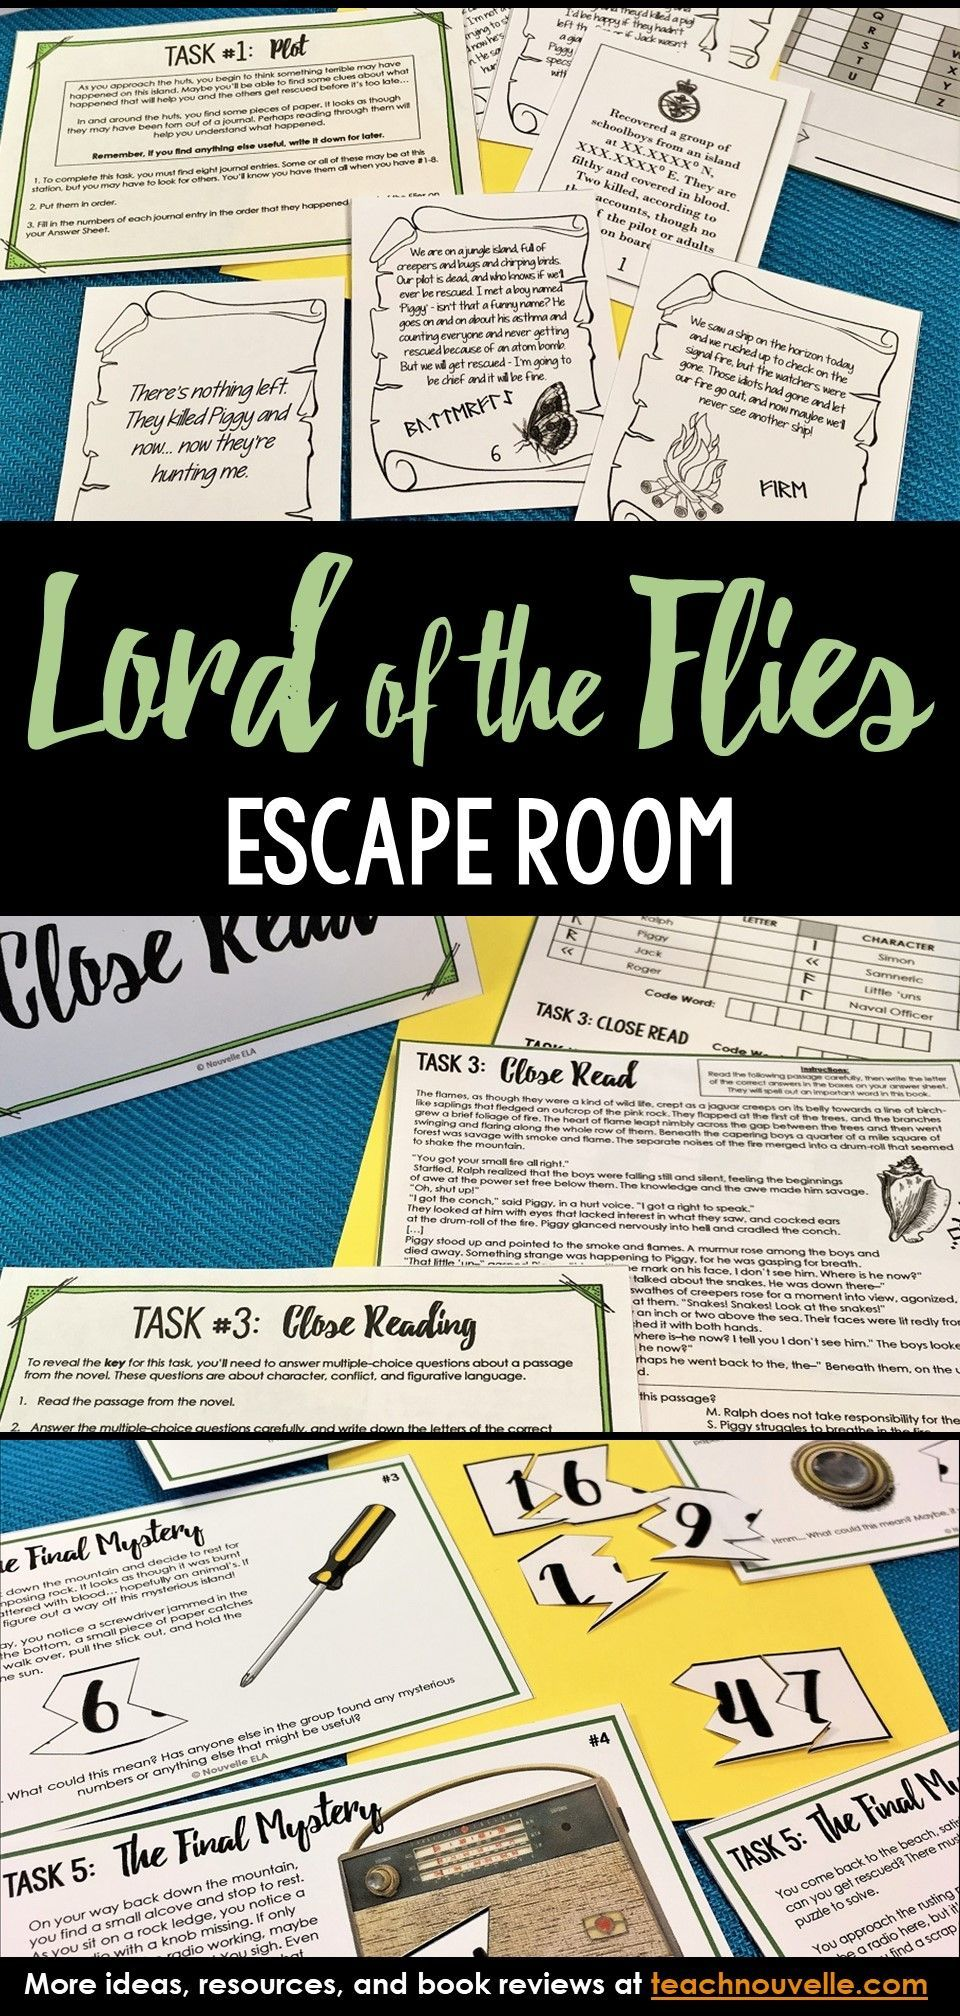 Lord Of The Flies Escape Room Review Activity With Images Lord